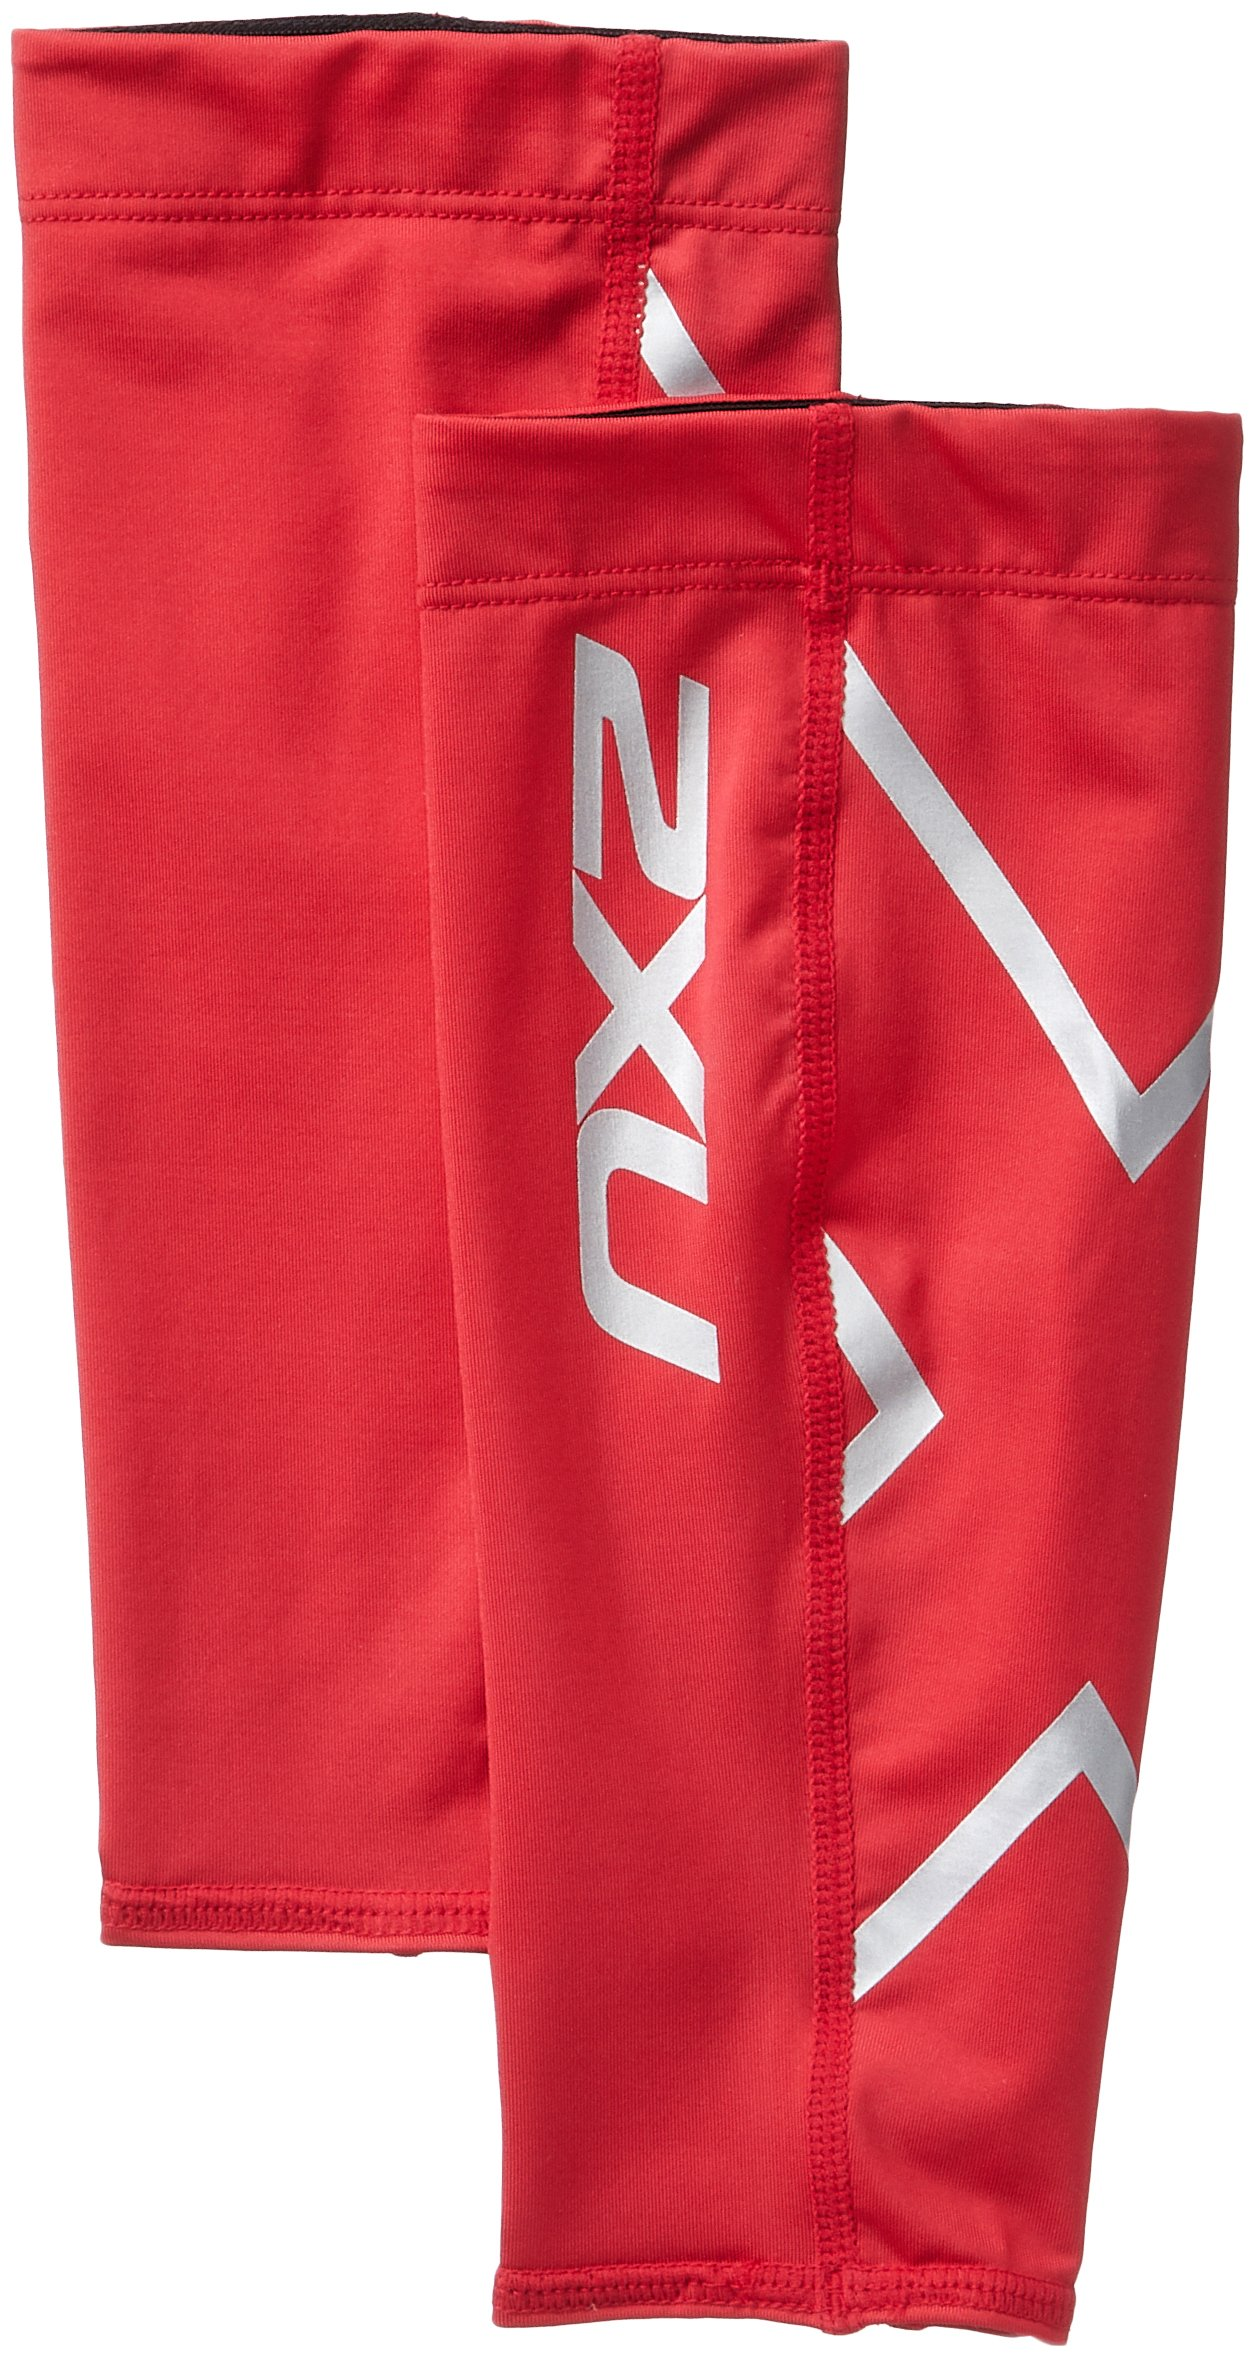 2XU Compression Calf Guards, Red/Red, X-Small